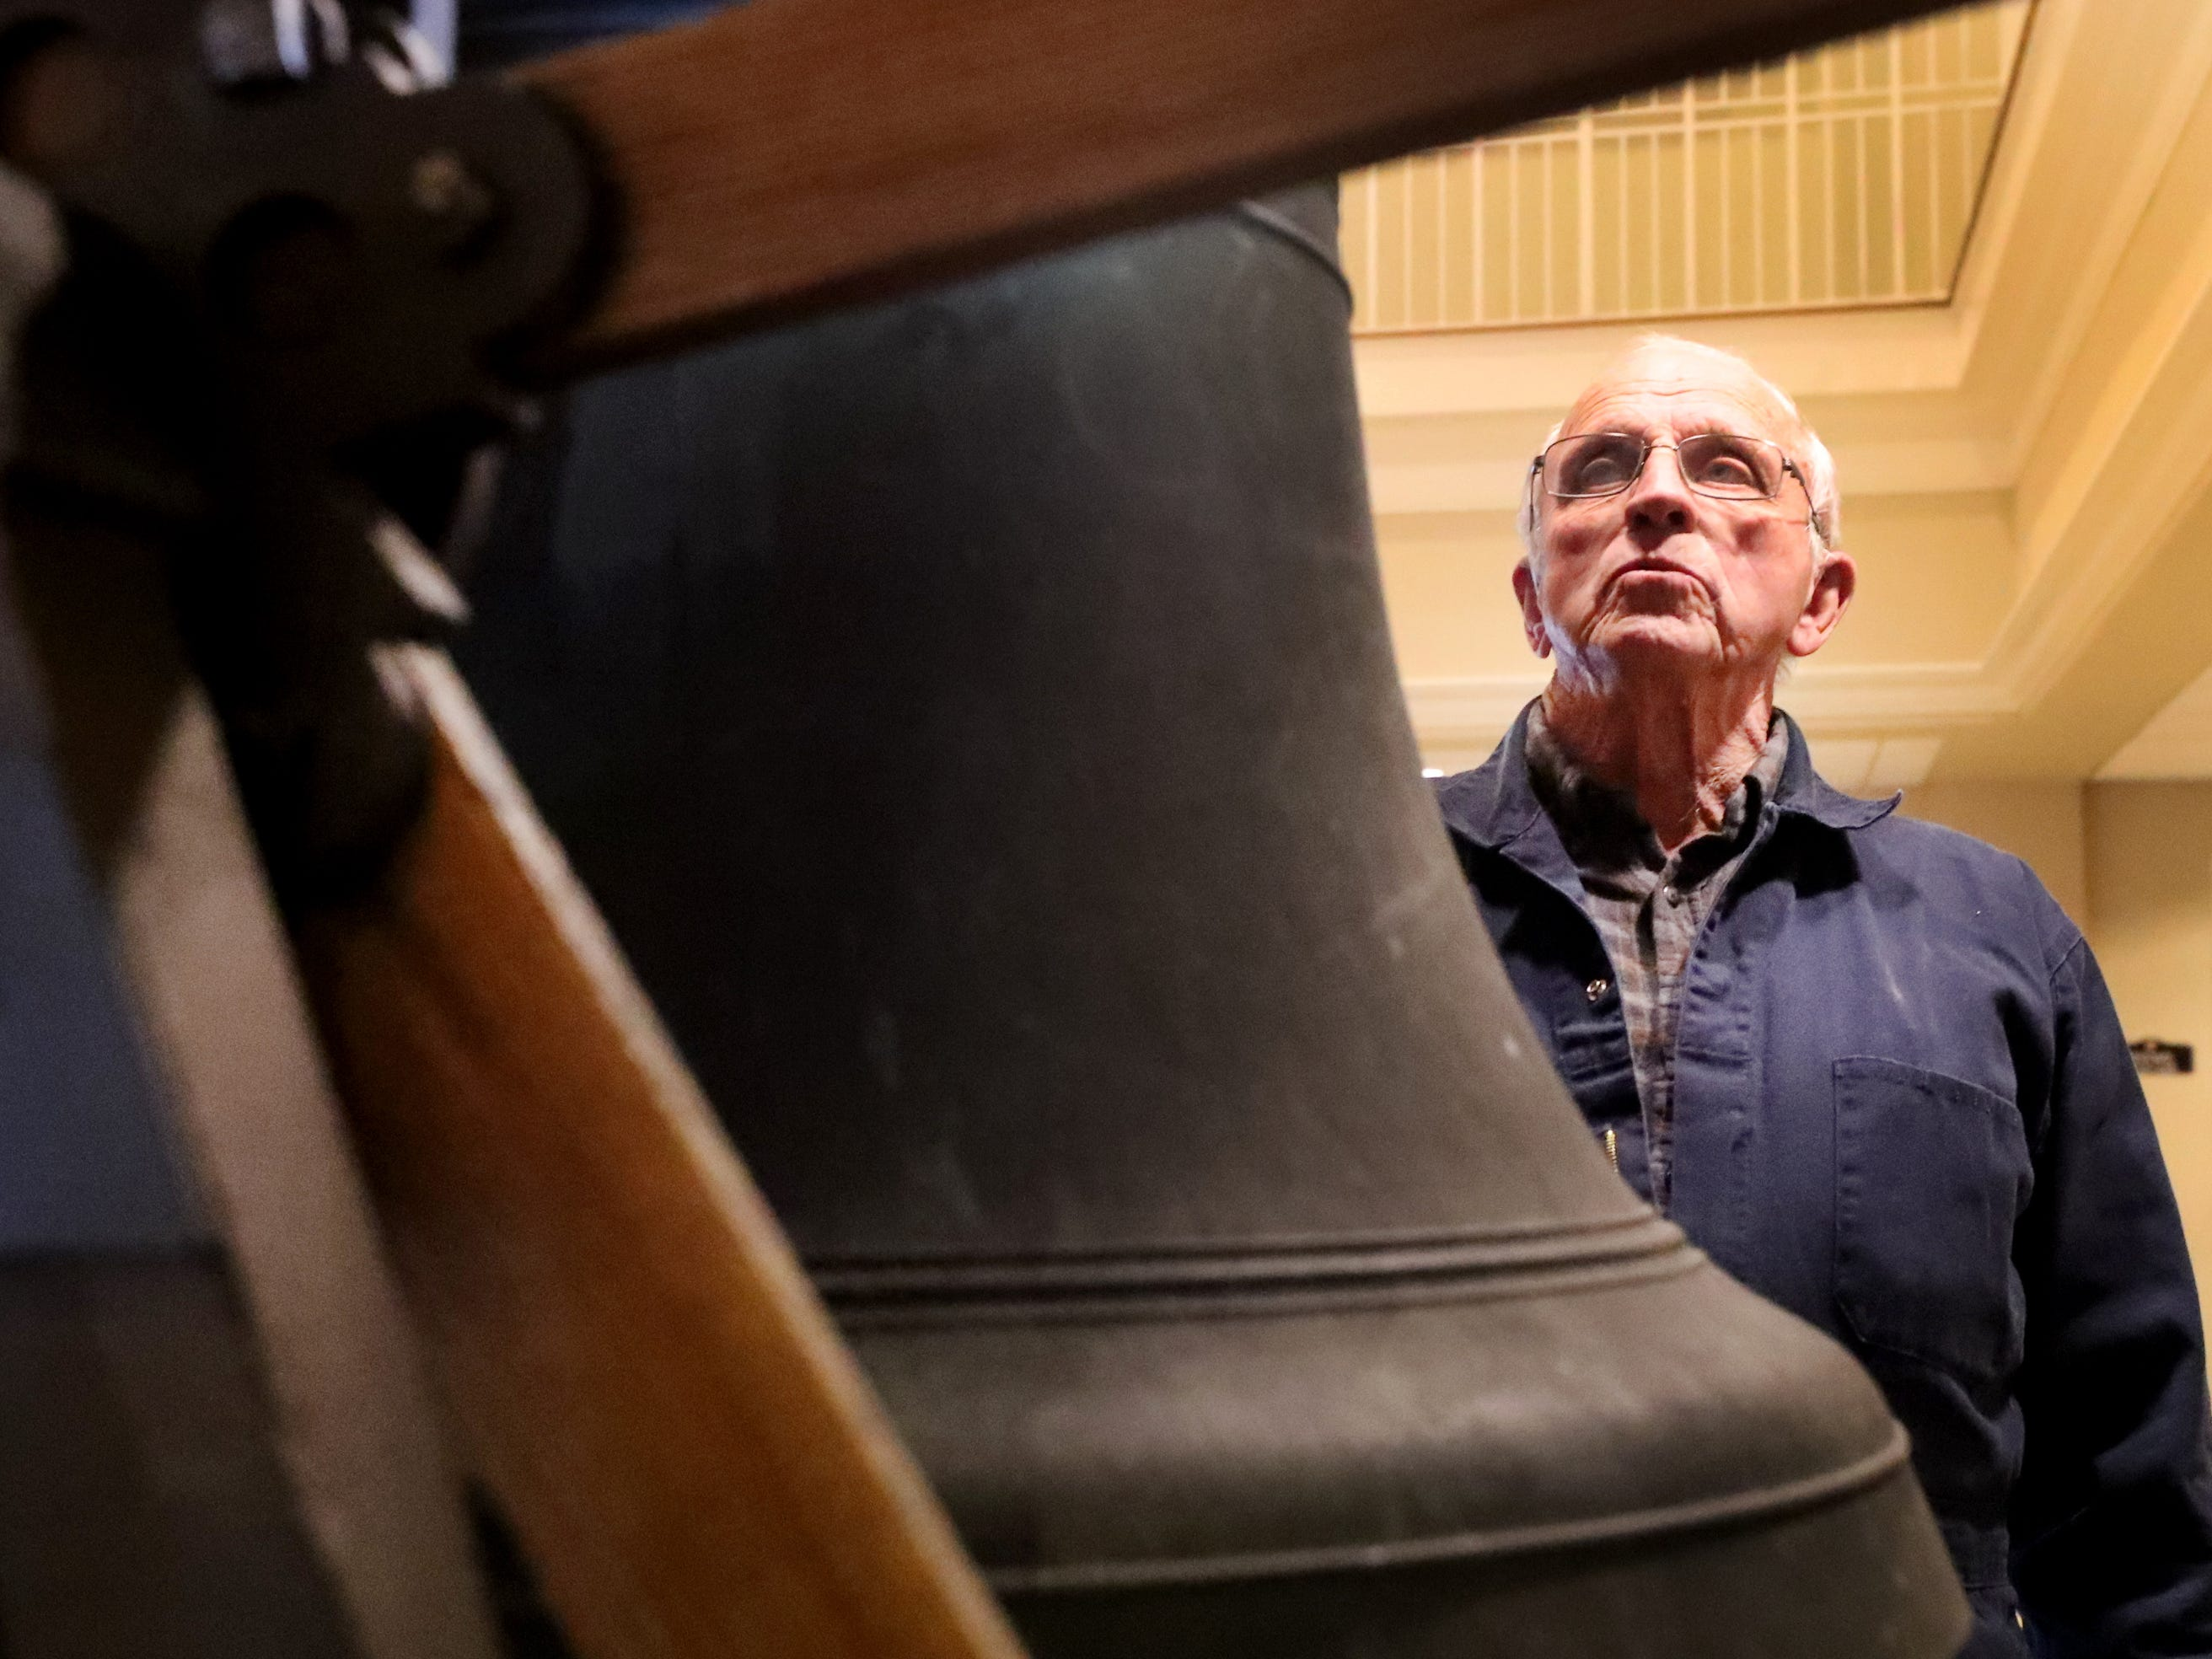 John Sallee, helps install the old bell that was once located in the former First Methodist Church site in downtown Murfreesboro, to the new church site on Thompson Lane, on Tuesday April 2, 2019.